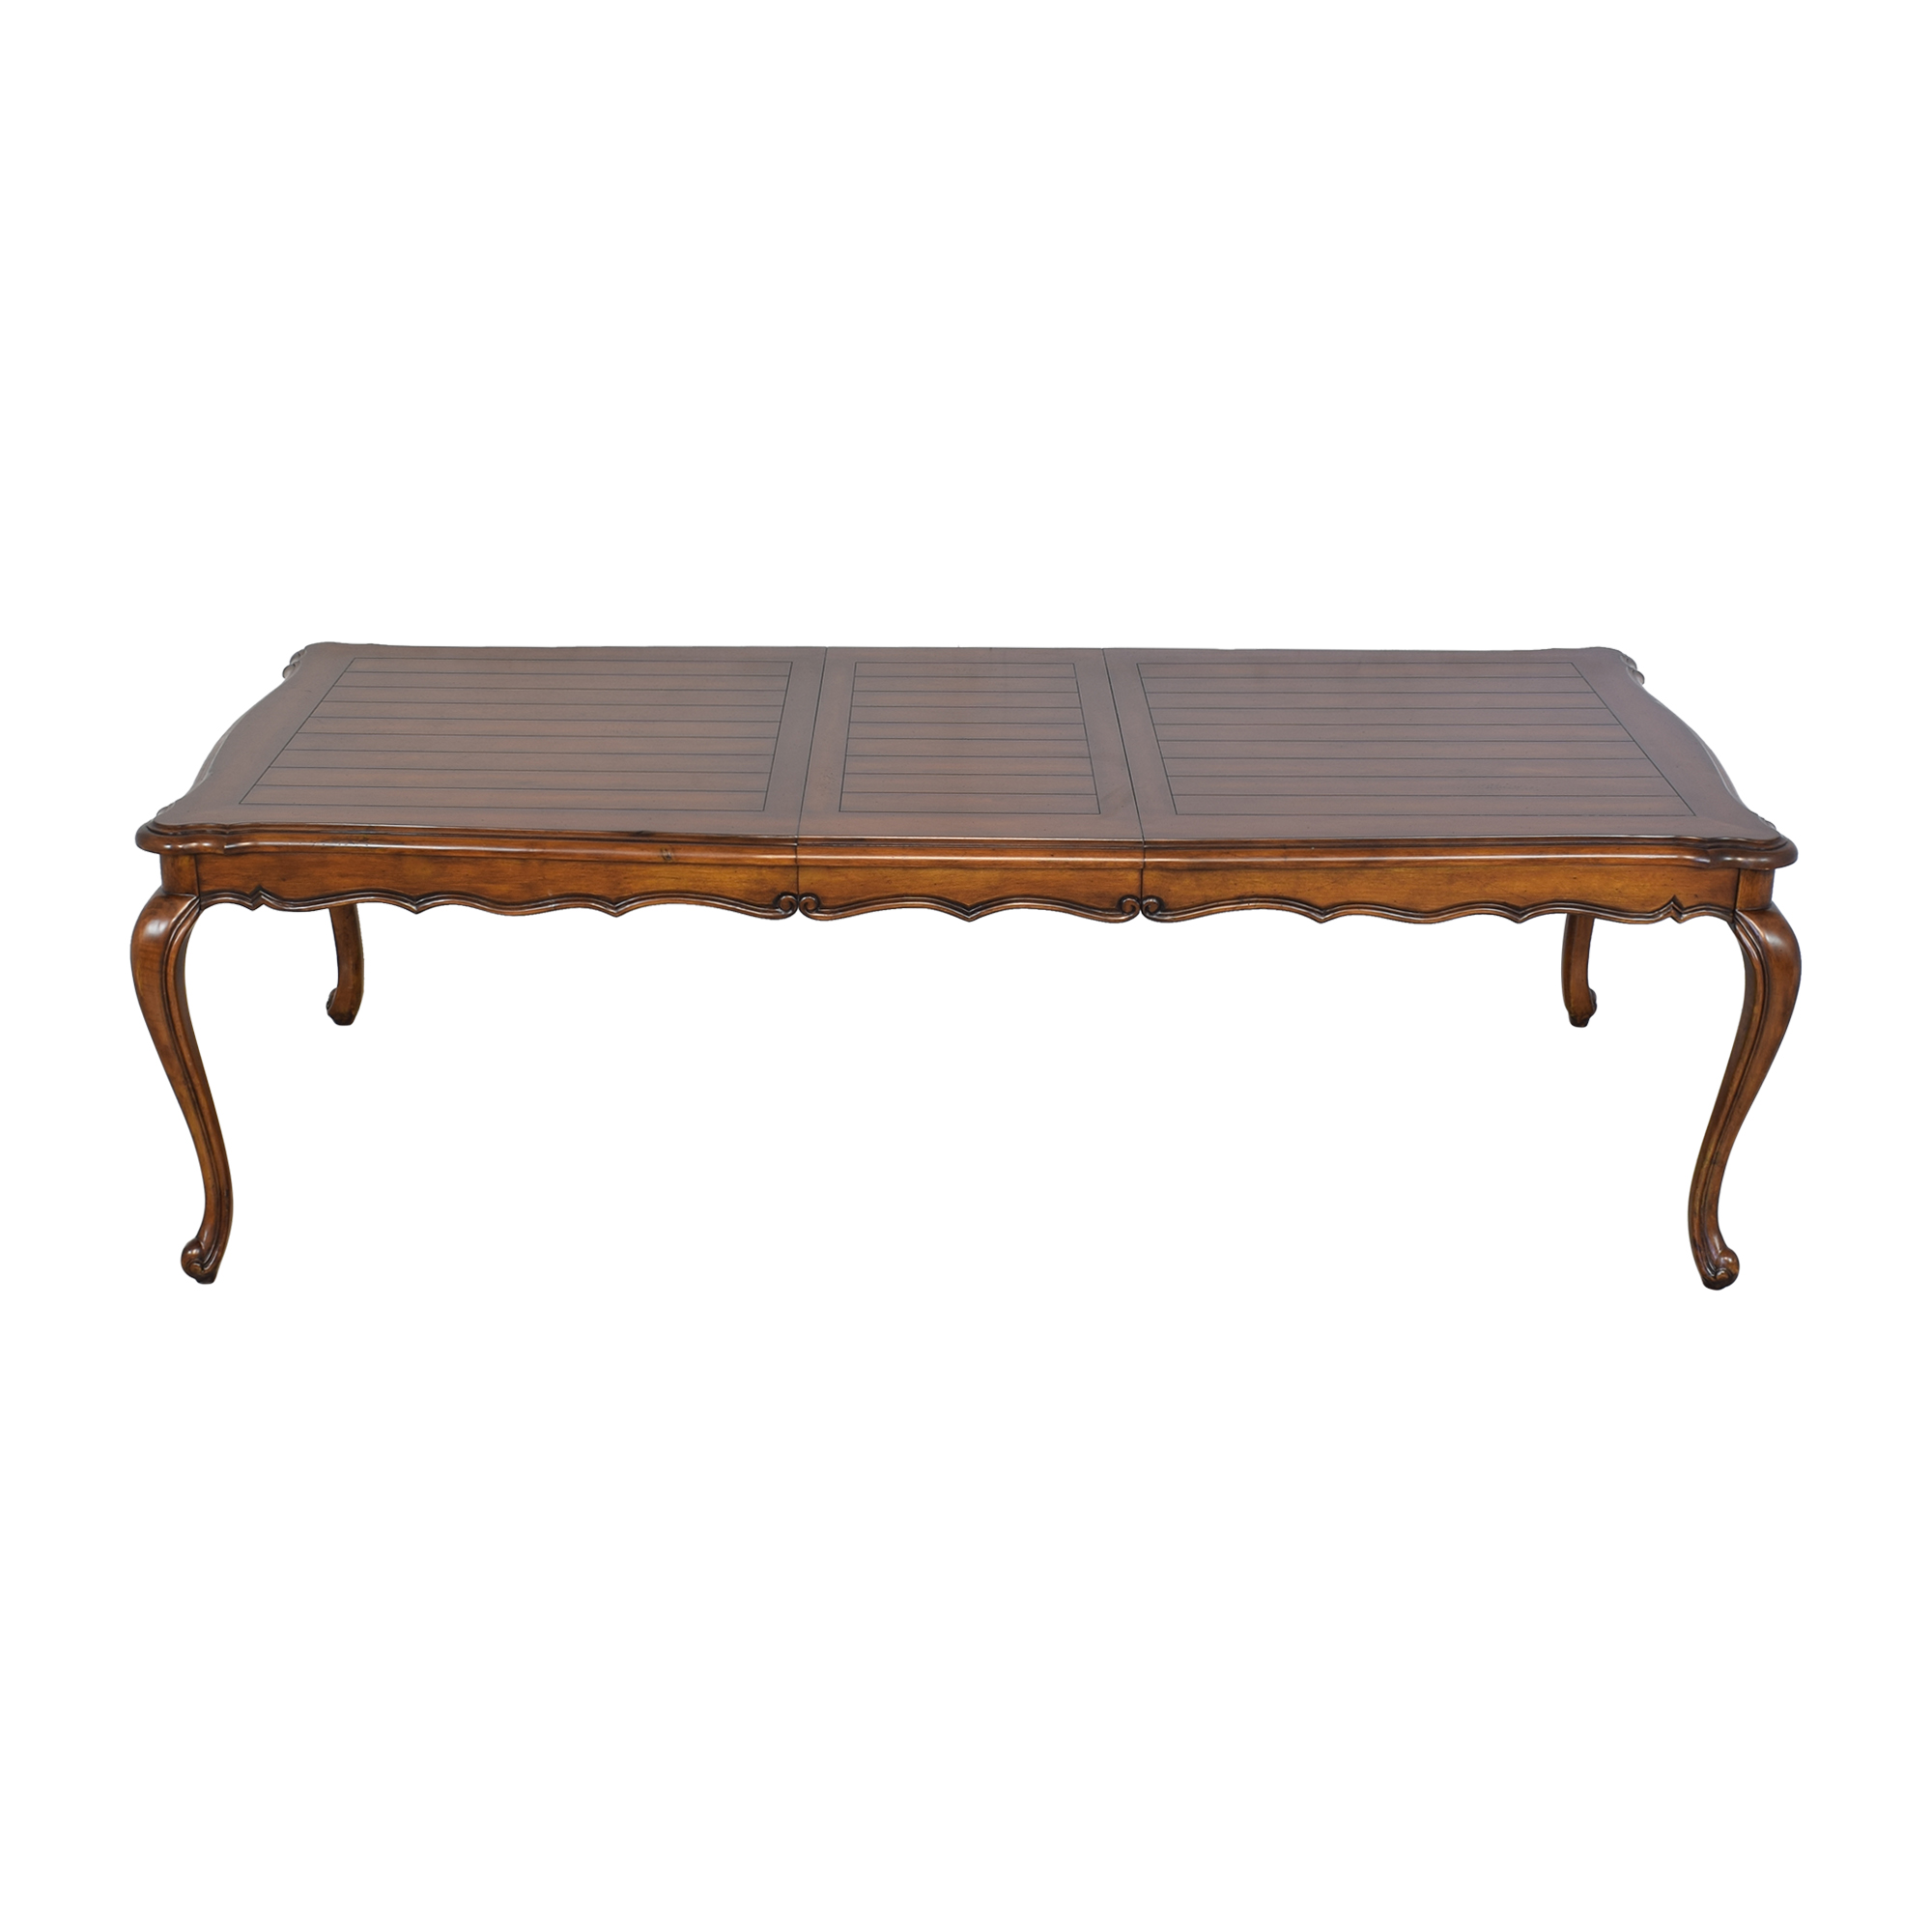 Artistica Artistica Extendable Dining Table ct